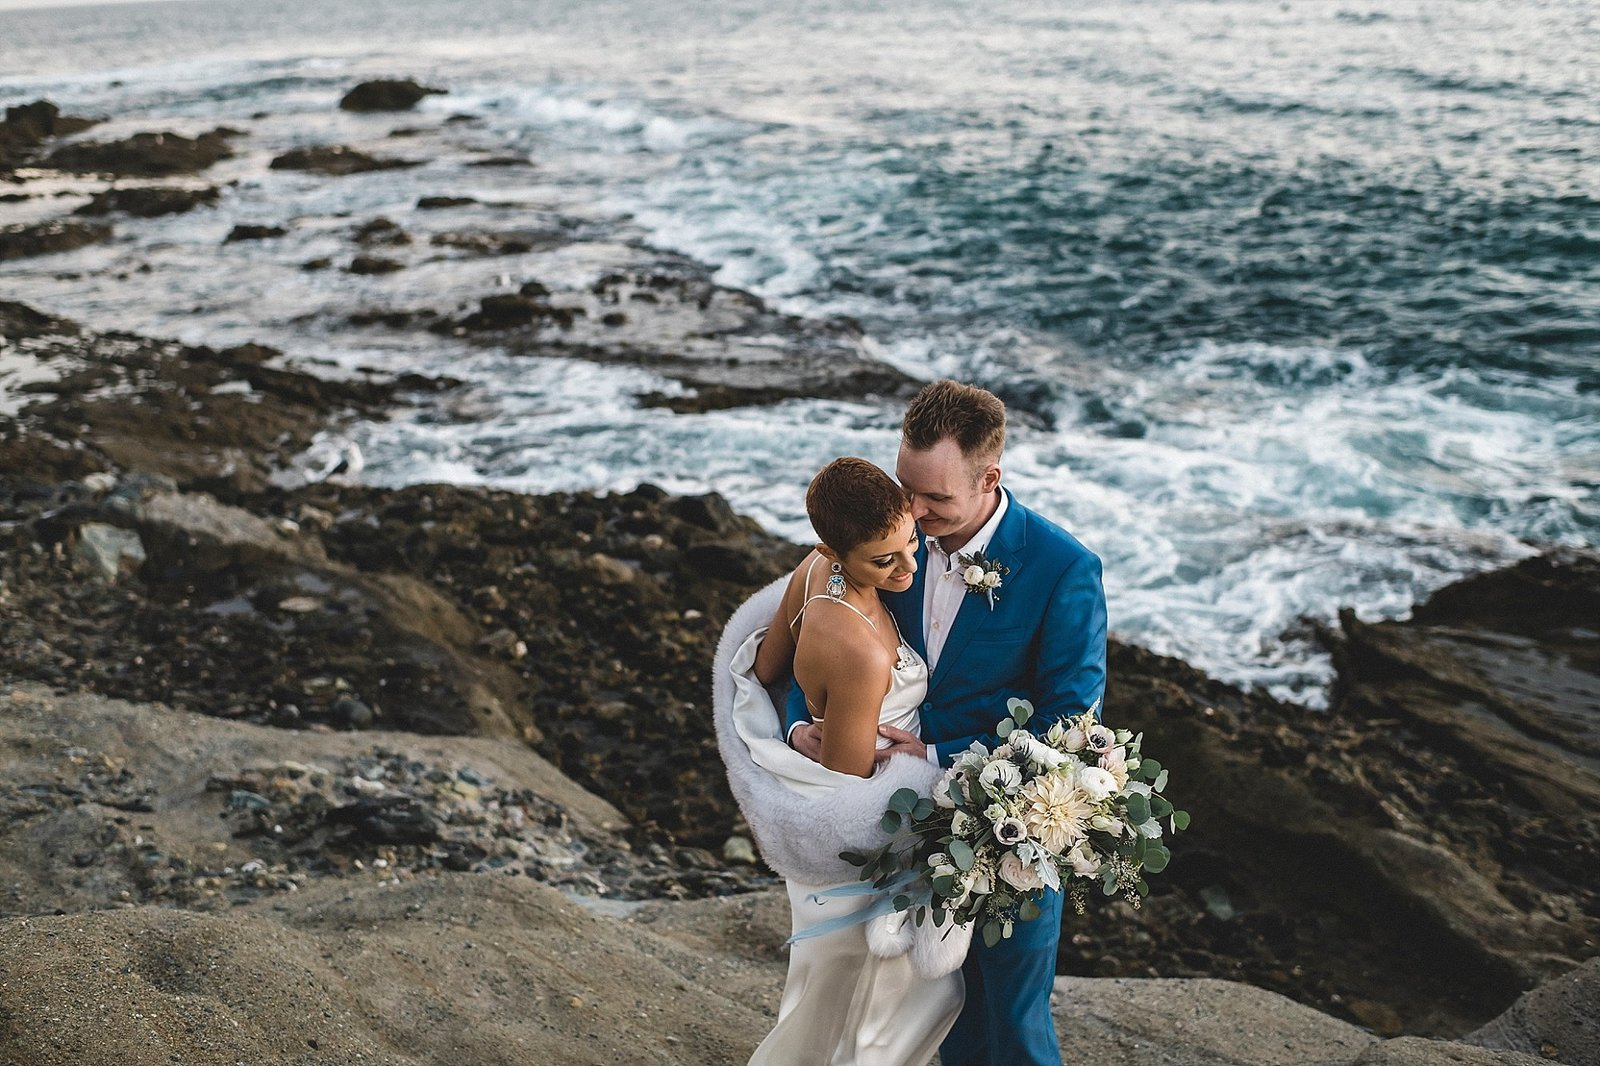 Elopement Photographer Laguna Beach Montage Wedding Elopement 0061